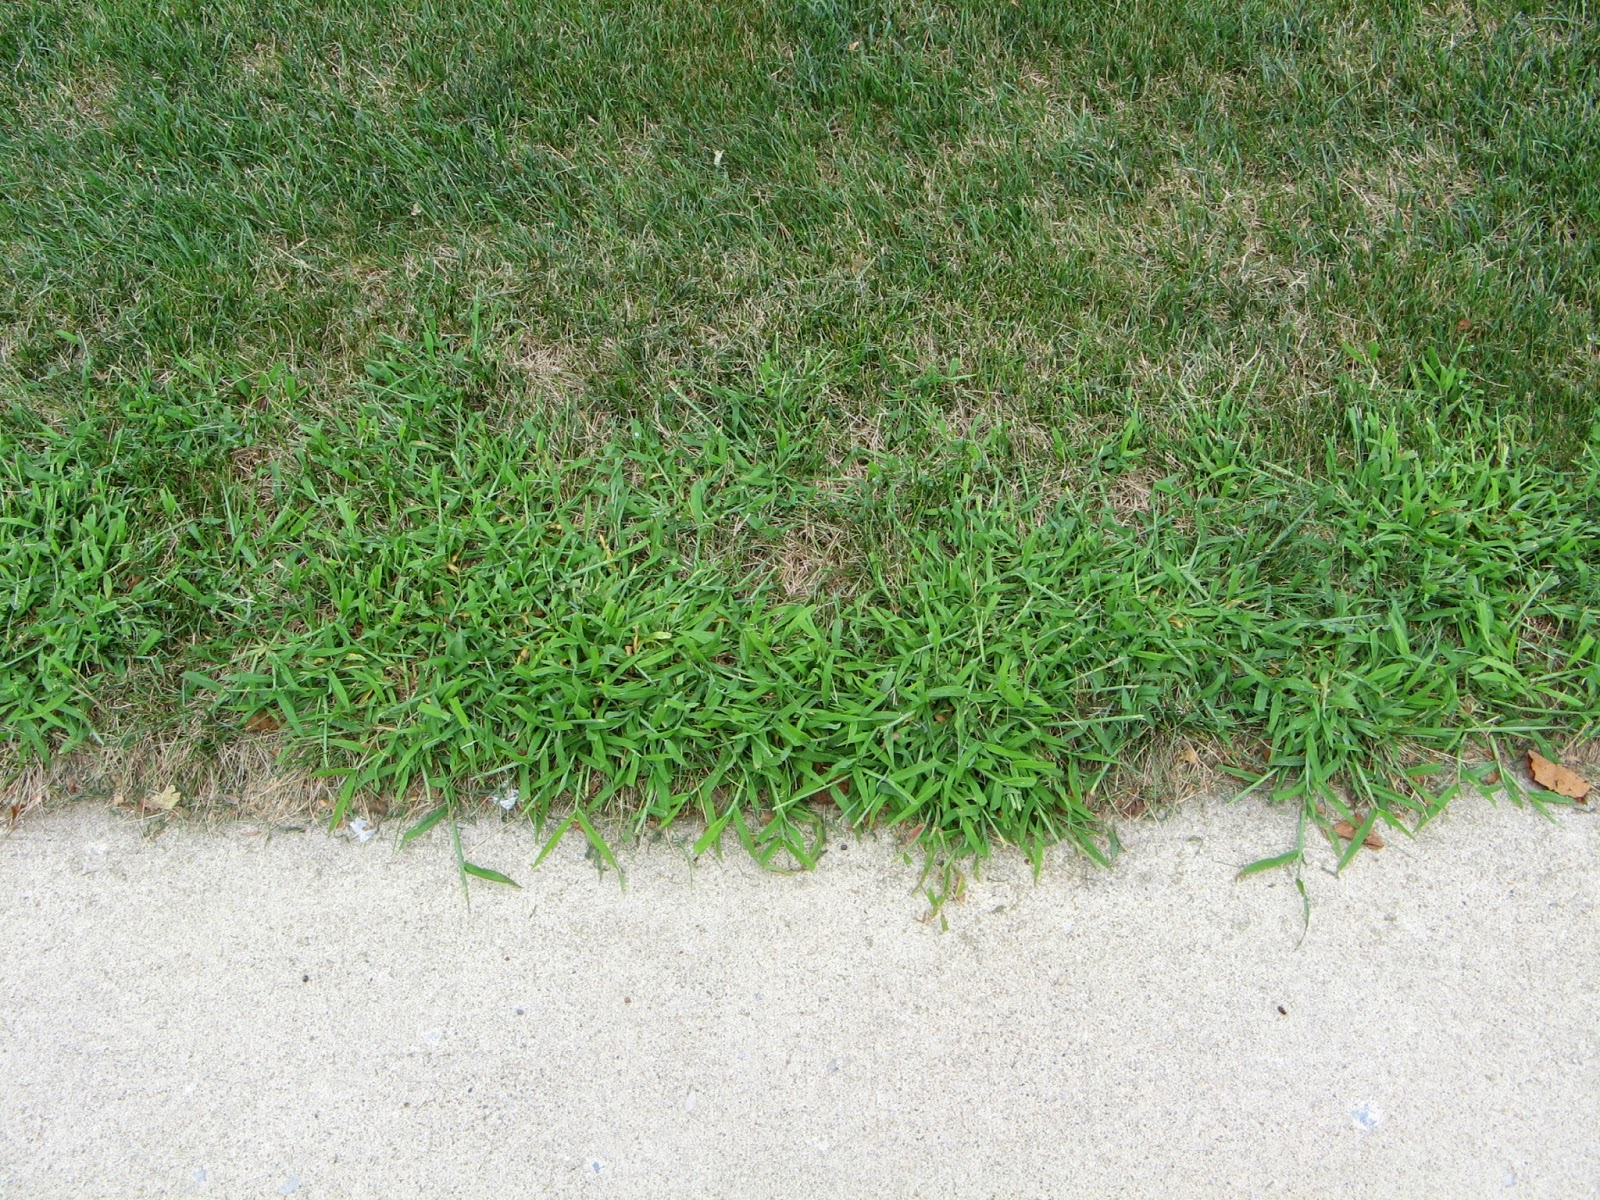 Crabgrass infestations are common in summer.